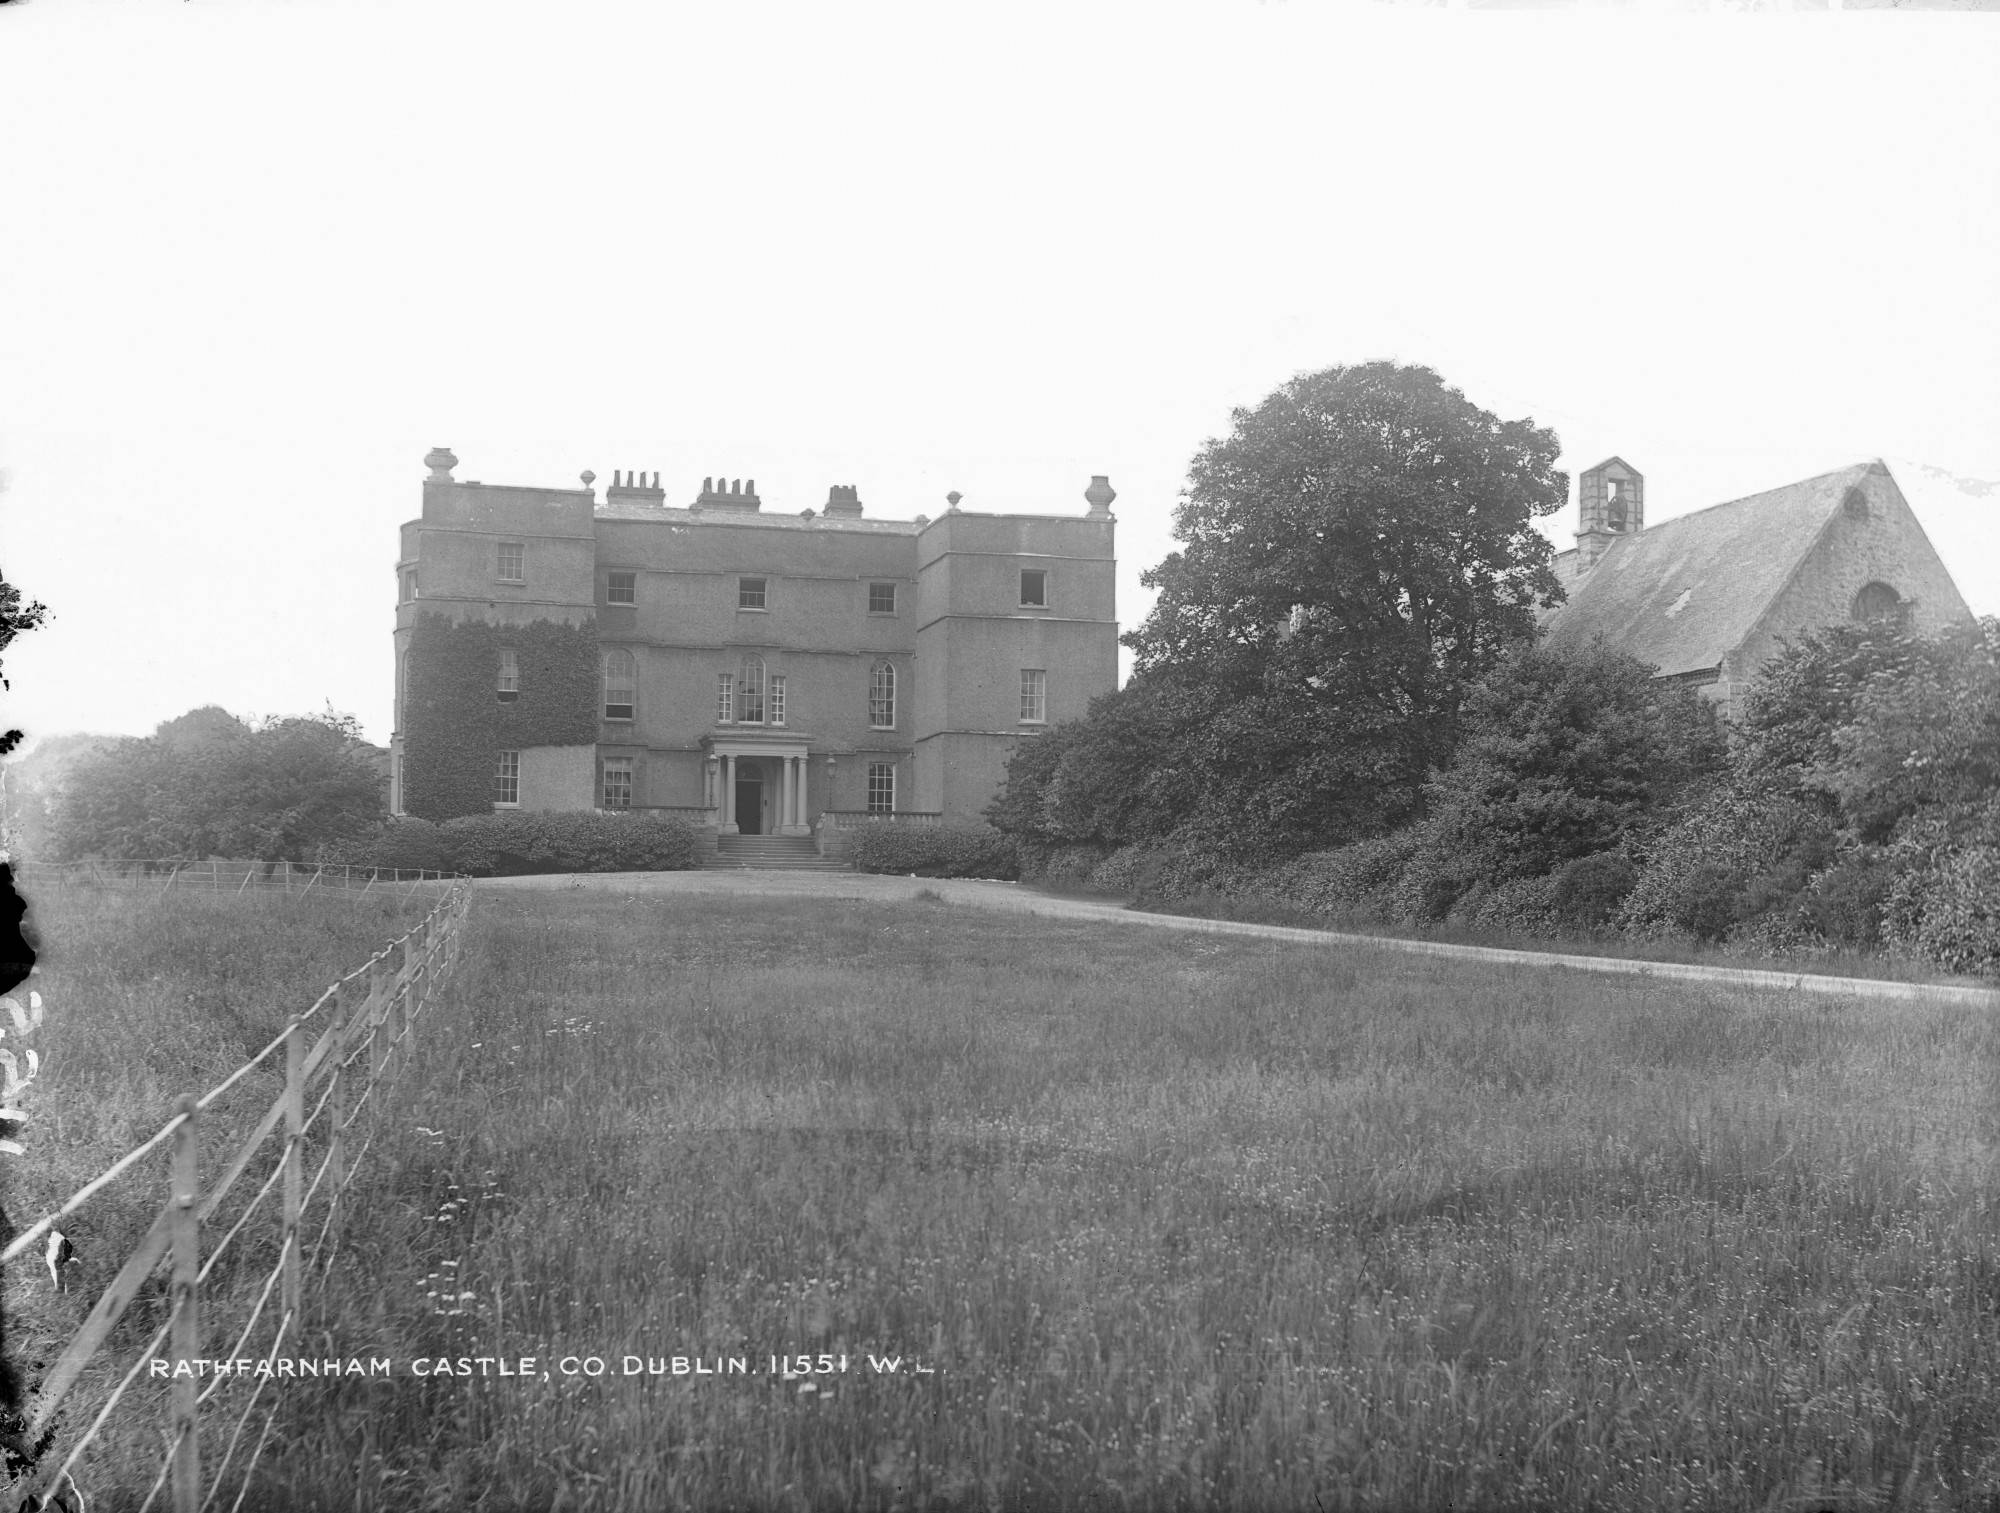 Rathfarnham Castle photographed by Robert French for the Lawrence Collection, around 1900. National Library of Ireland.